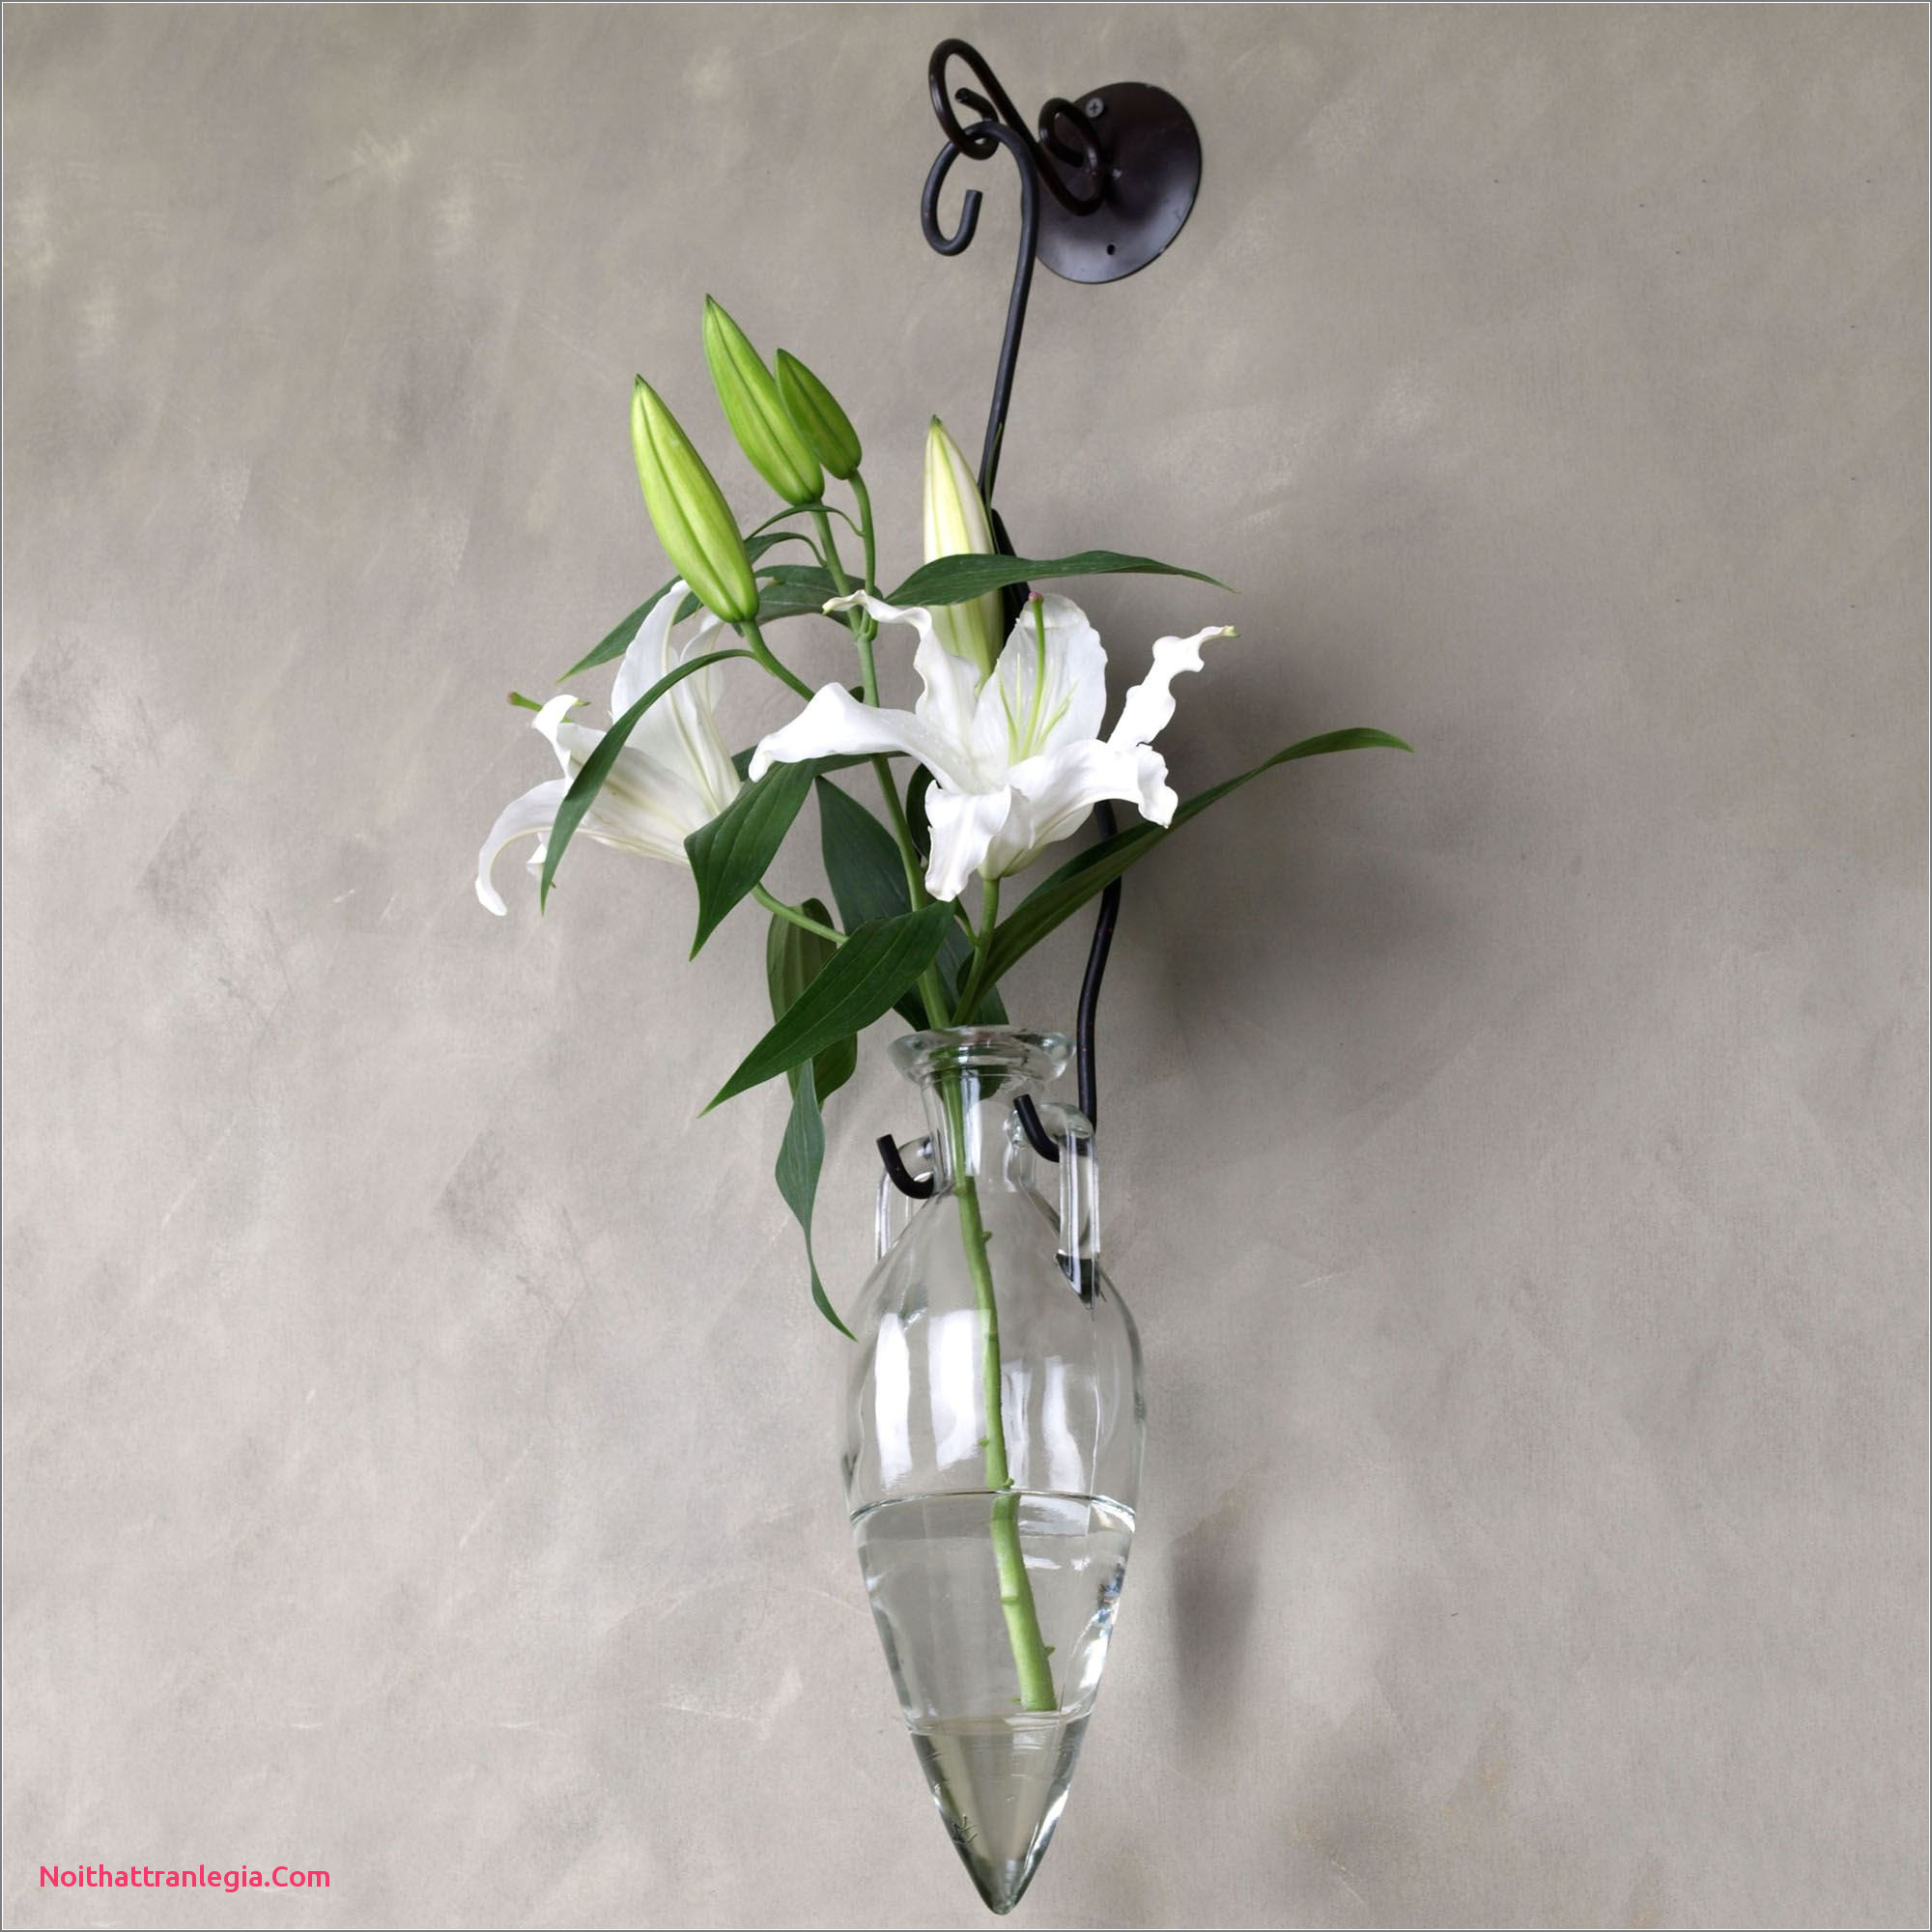 Watering Can Flower Vase Of 20 Wedding Vases Noithattranlegia Vases Design with Regard to and Sign for Wedding Unbelievable H Vases Wall Hanging Flower Vase Newspaper I 0d Scheme Wall